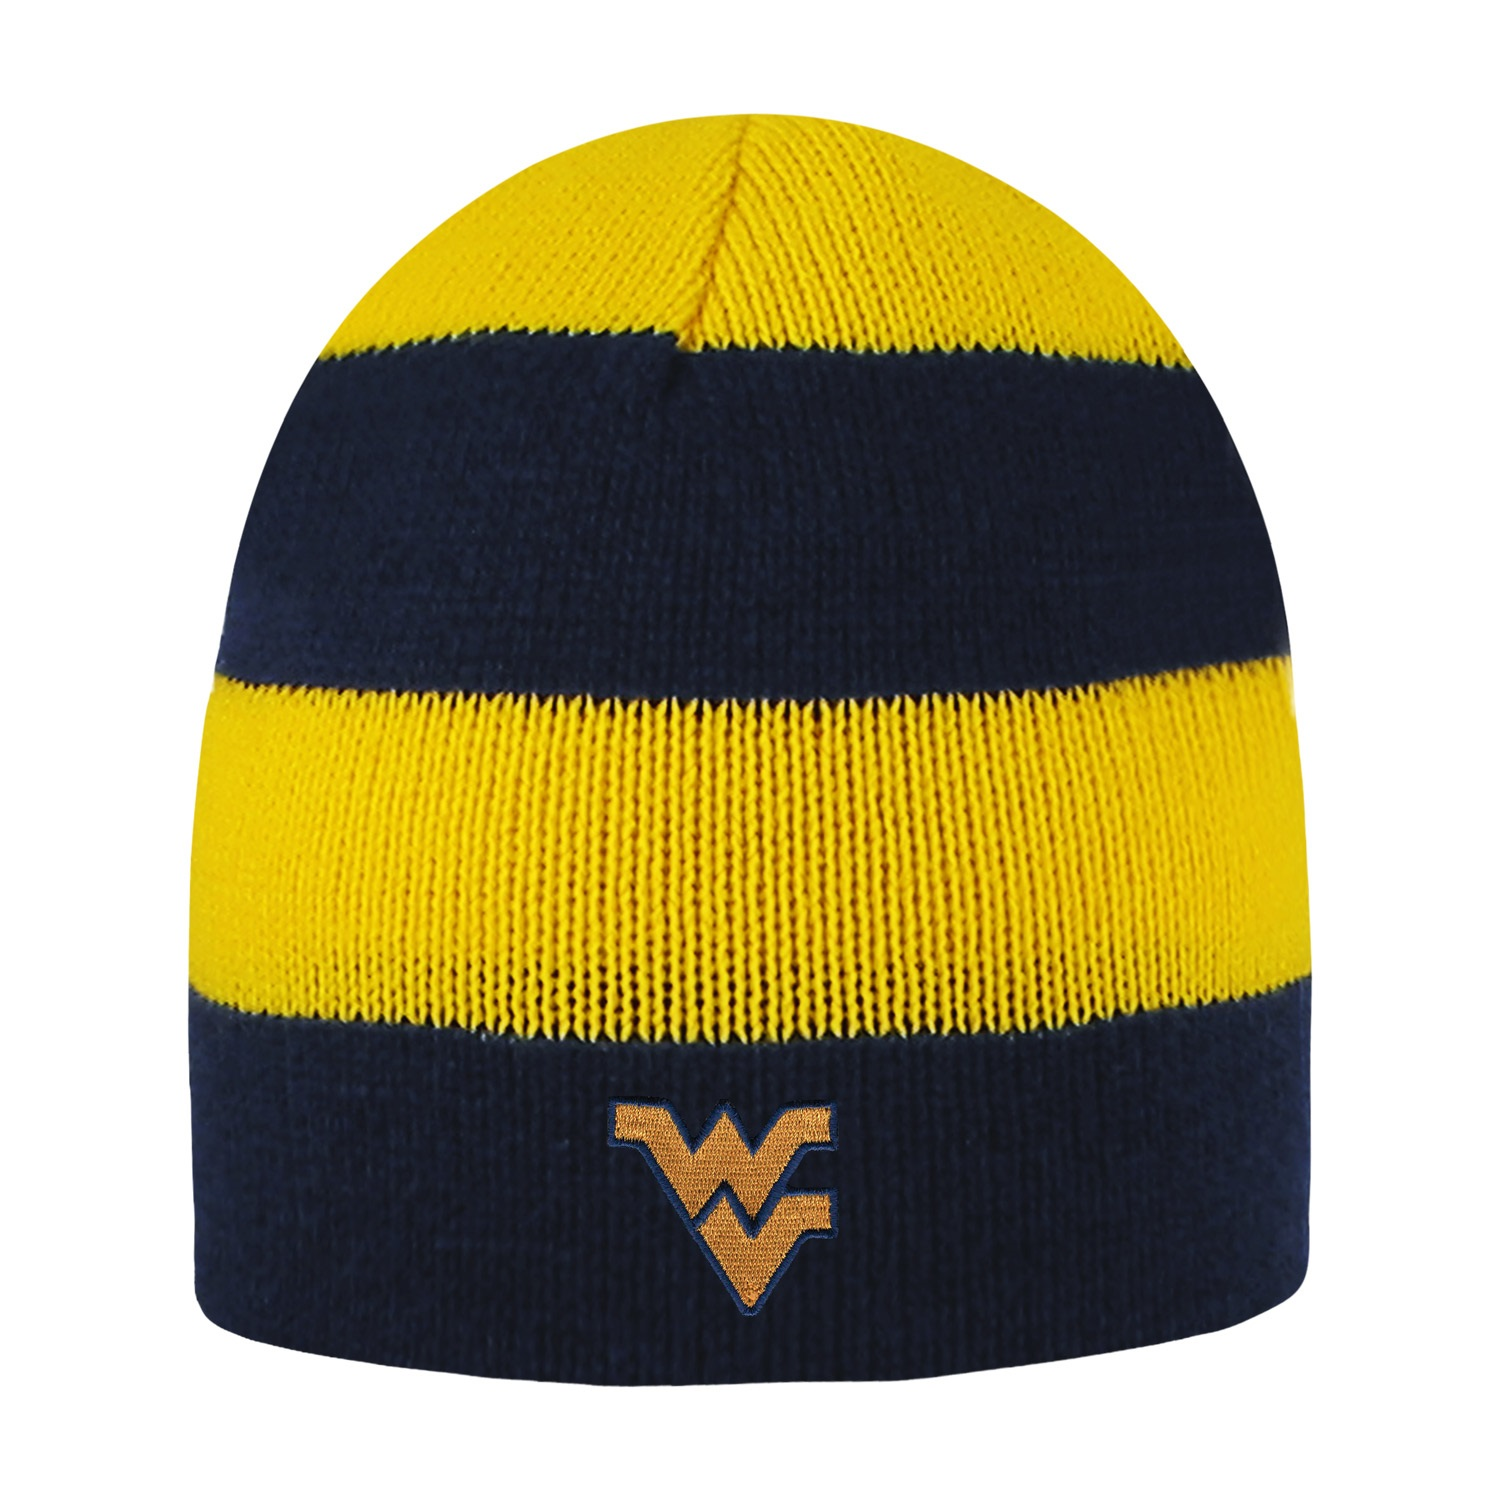 West Virginia University Rugby Striped Knit Beanie